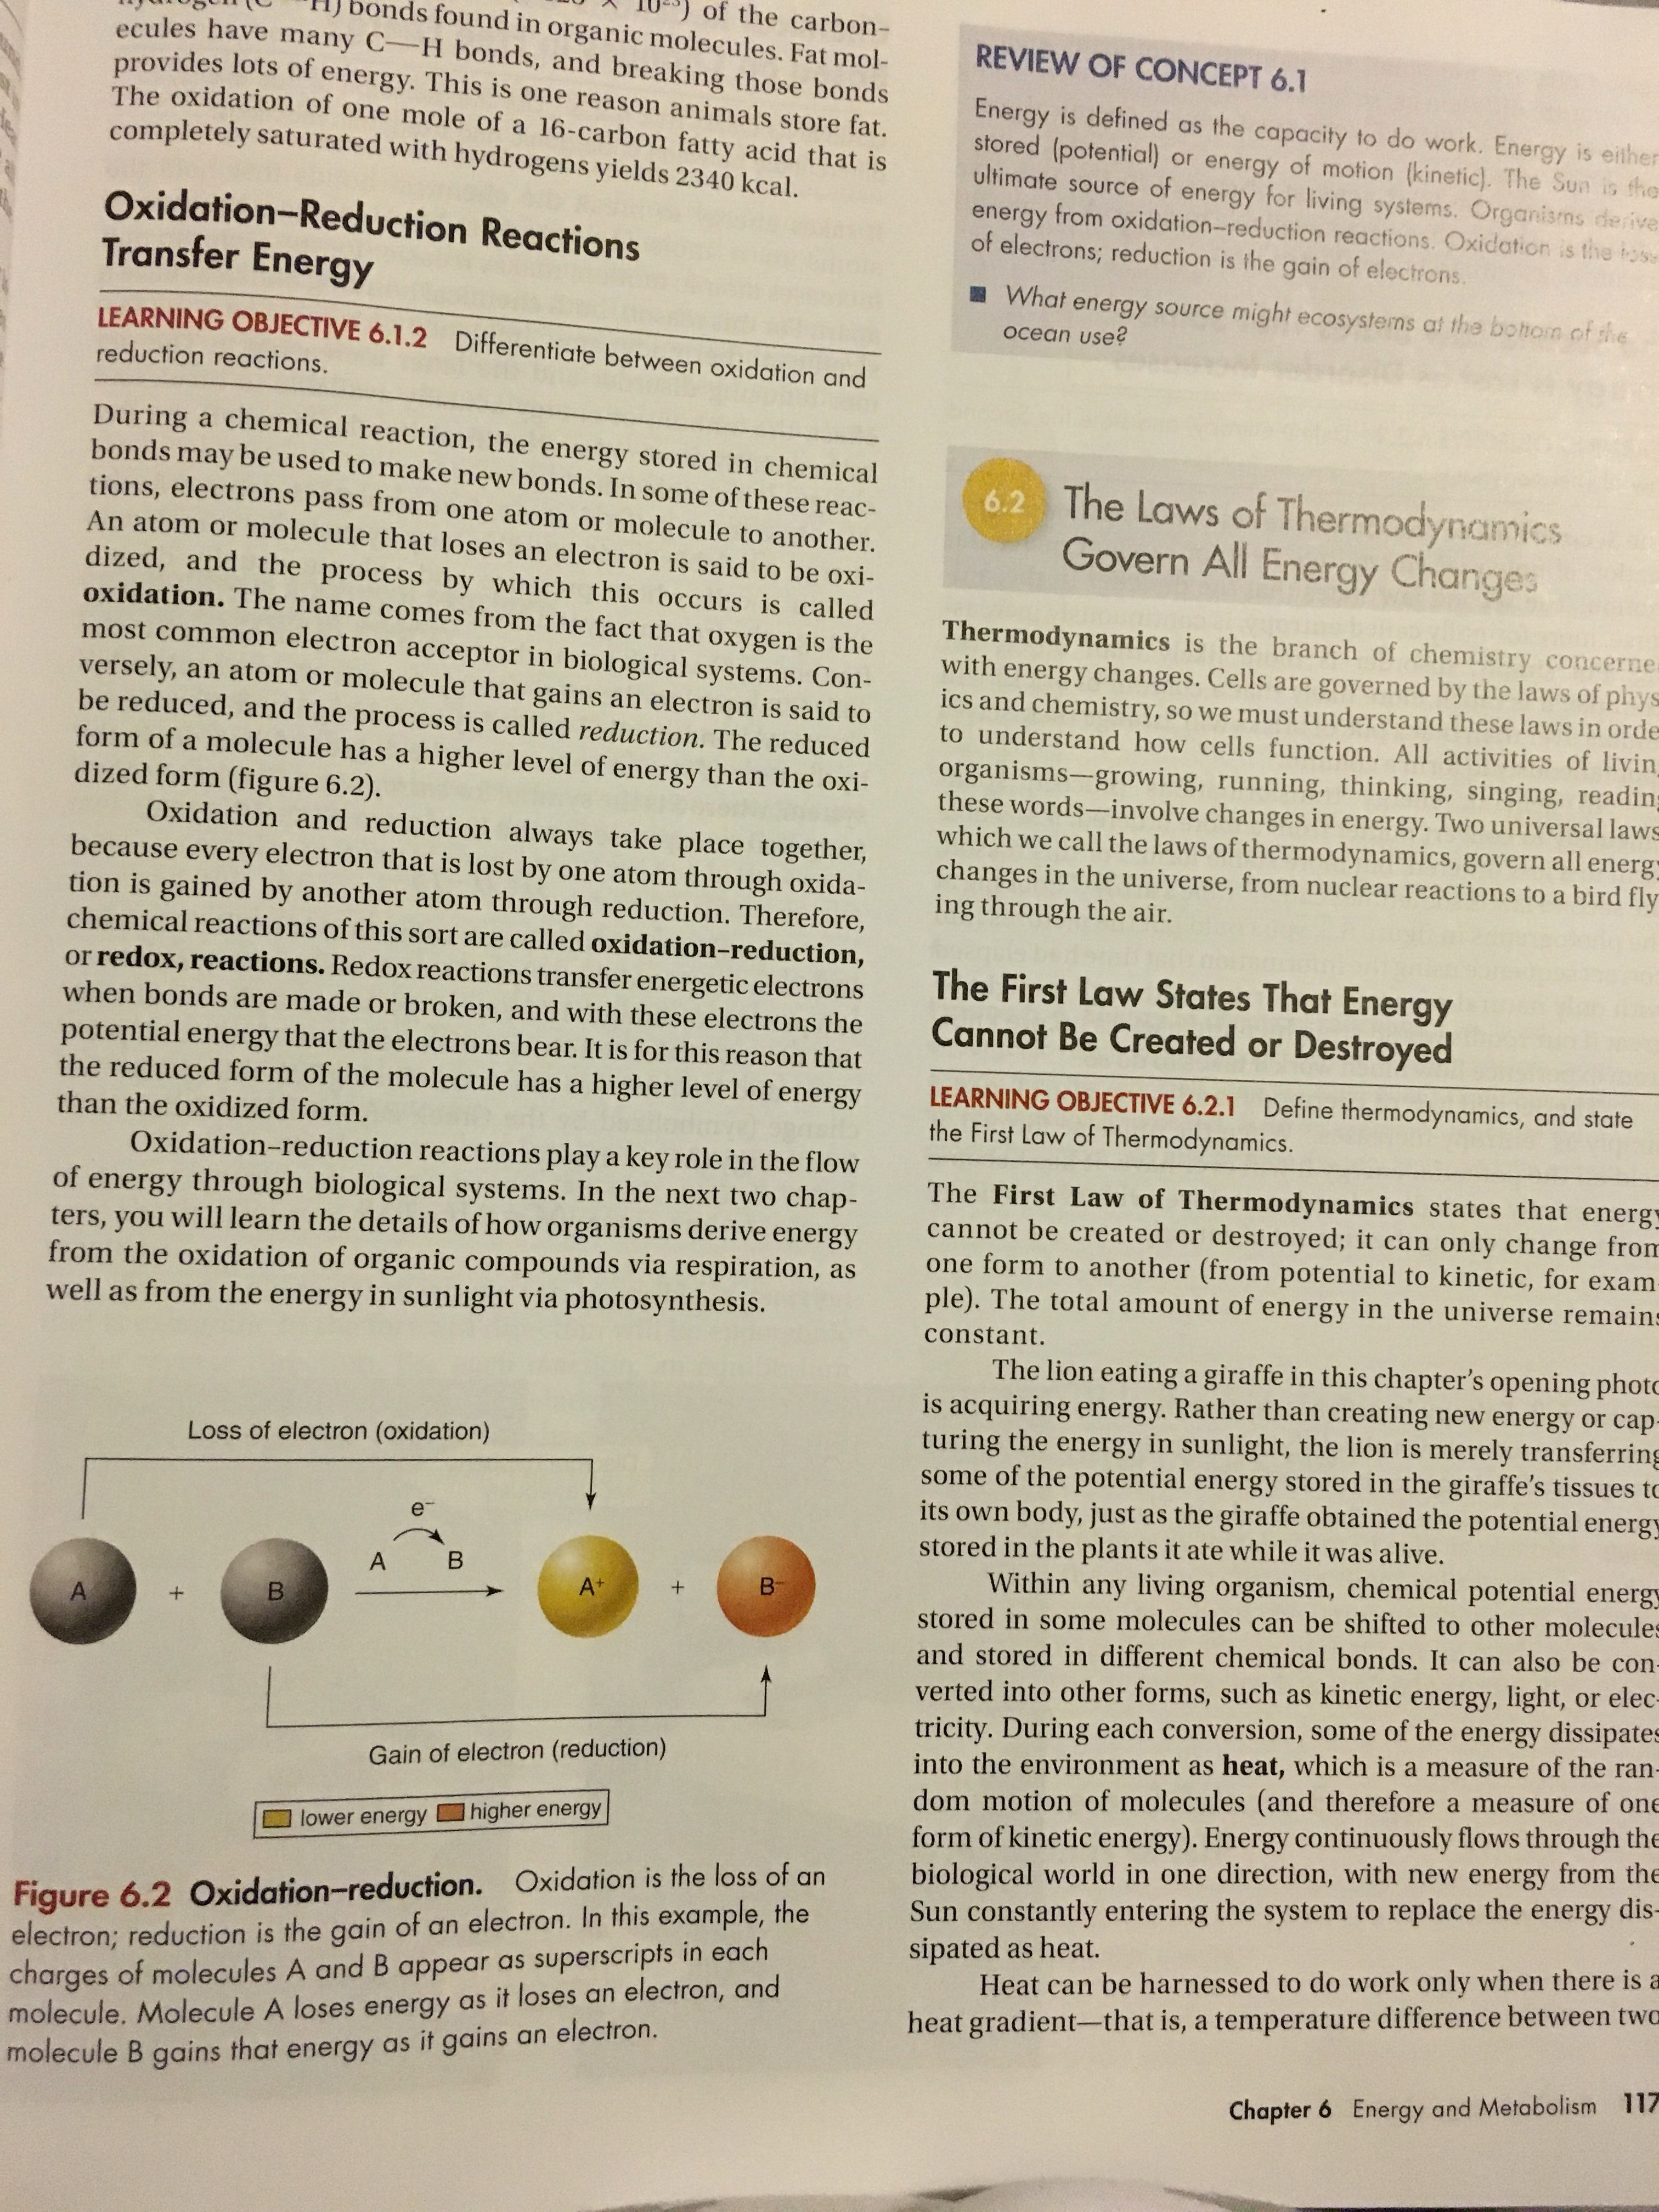 Thermodynamics Explained In A Biology Textbook Much